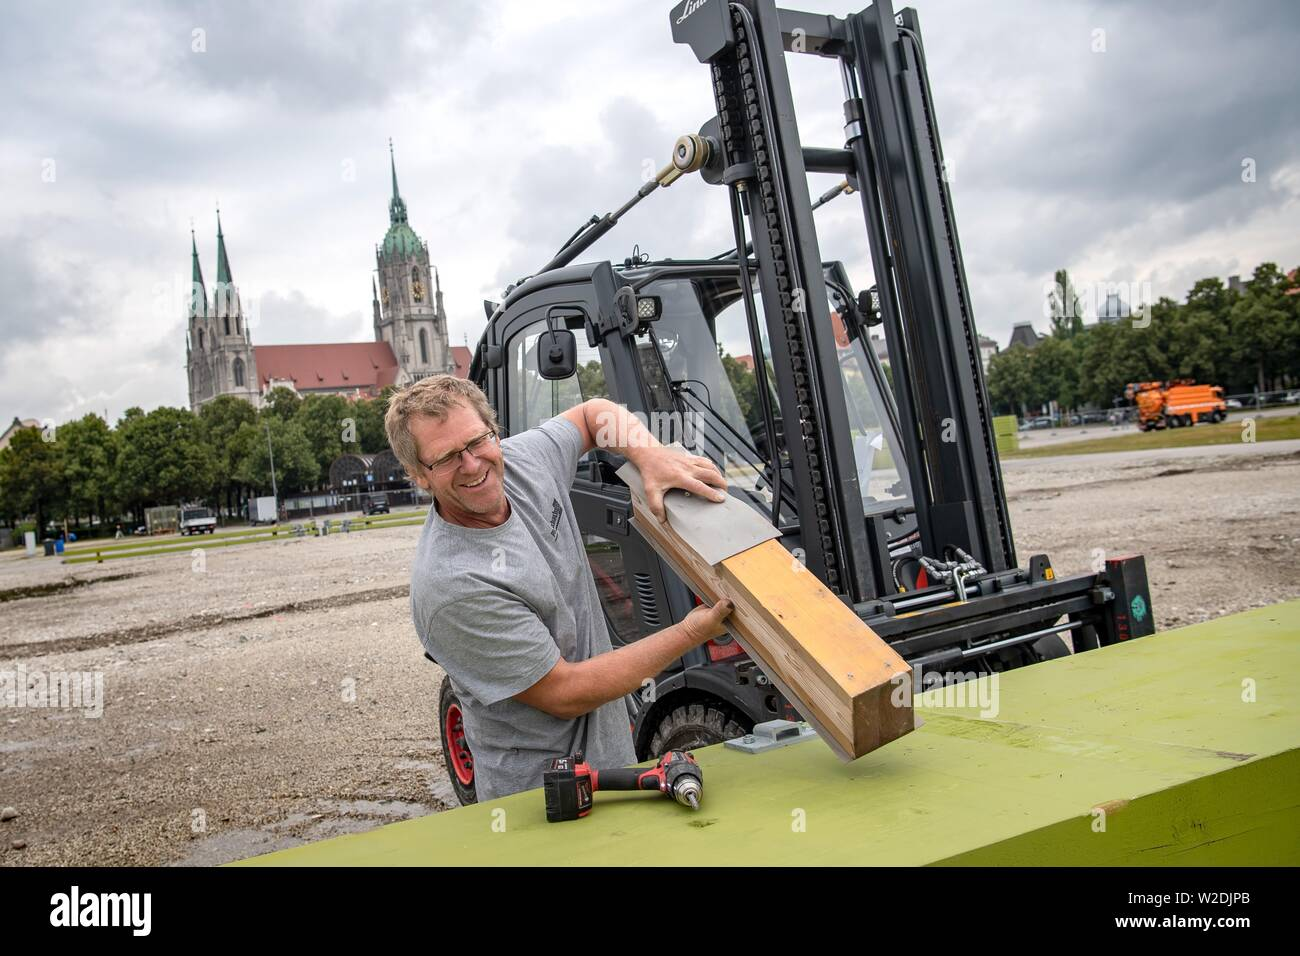 Munich, Germany. 08th July, 2019. The construction of the Oktoberfest 2019 begins, which will take place from 21.09 to 06.10.2019 in Munich. Credit: Sina Schuldt/dpa/Alamy Live News Stock Photo